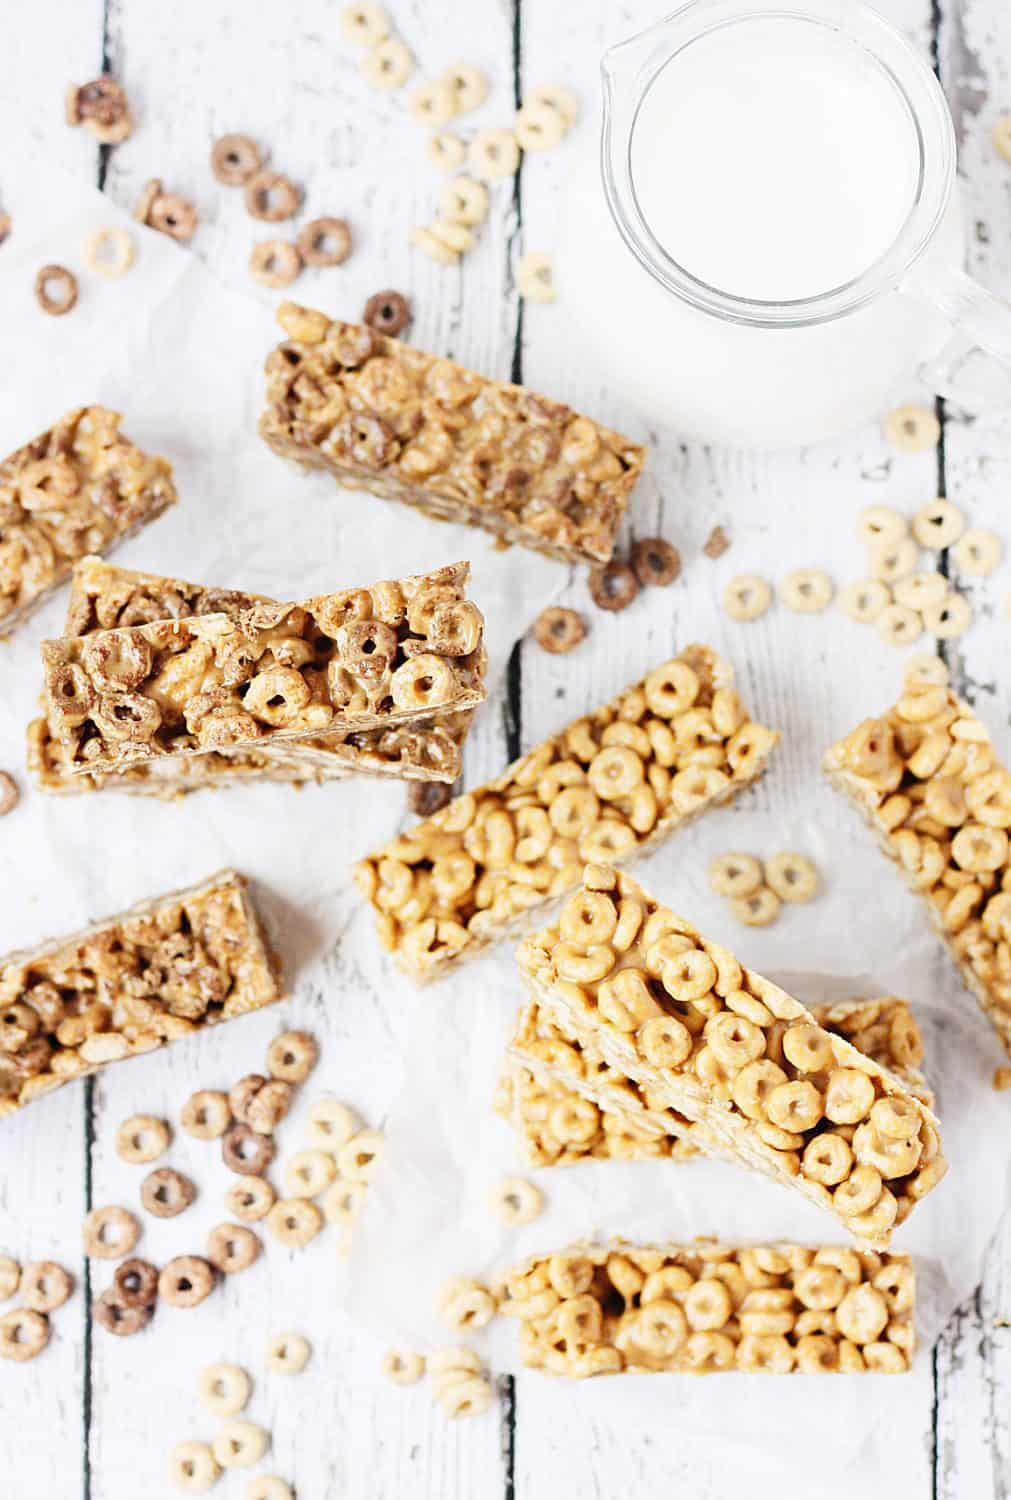 Easy no bake cereal bars half scratched easy no bake cereal bars easy no bake cereal bars take about ccuart Image collections